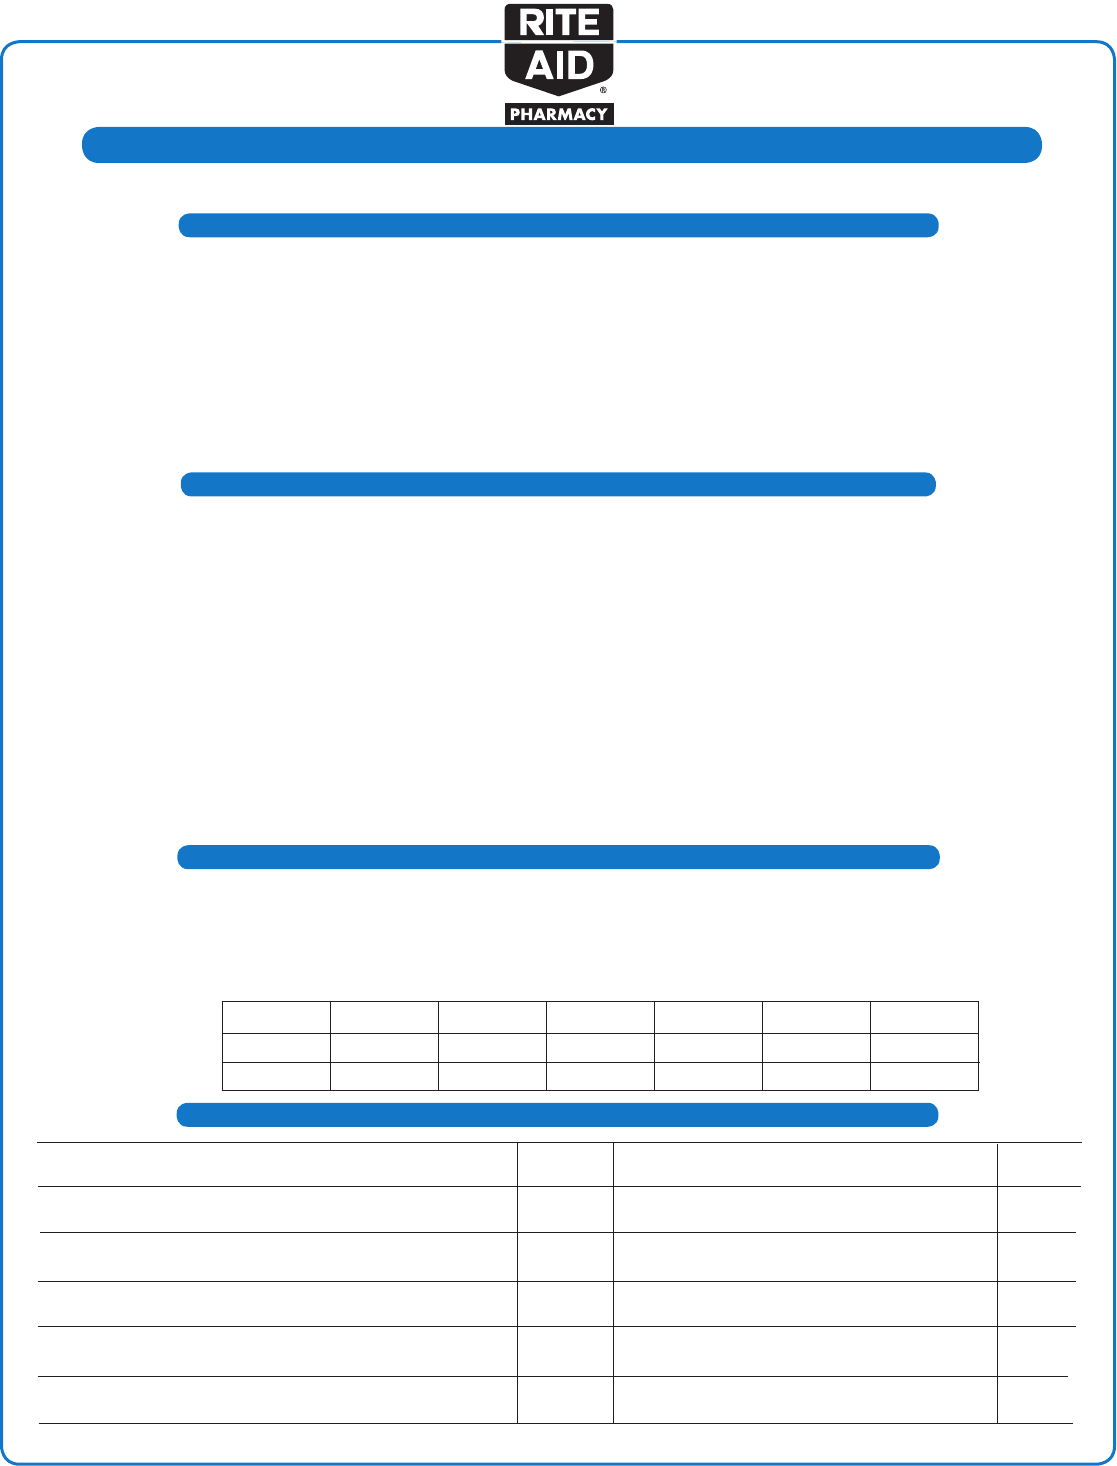 rite aid employment application form - Solid.graphikworks.co